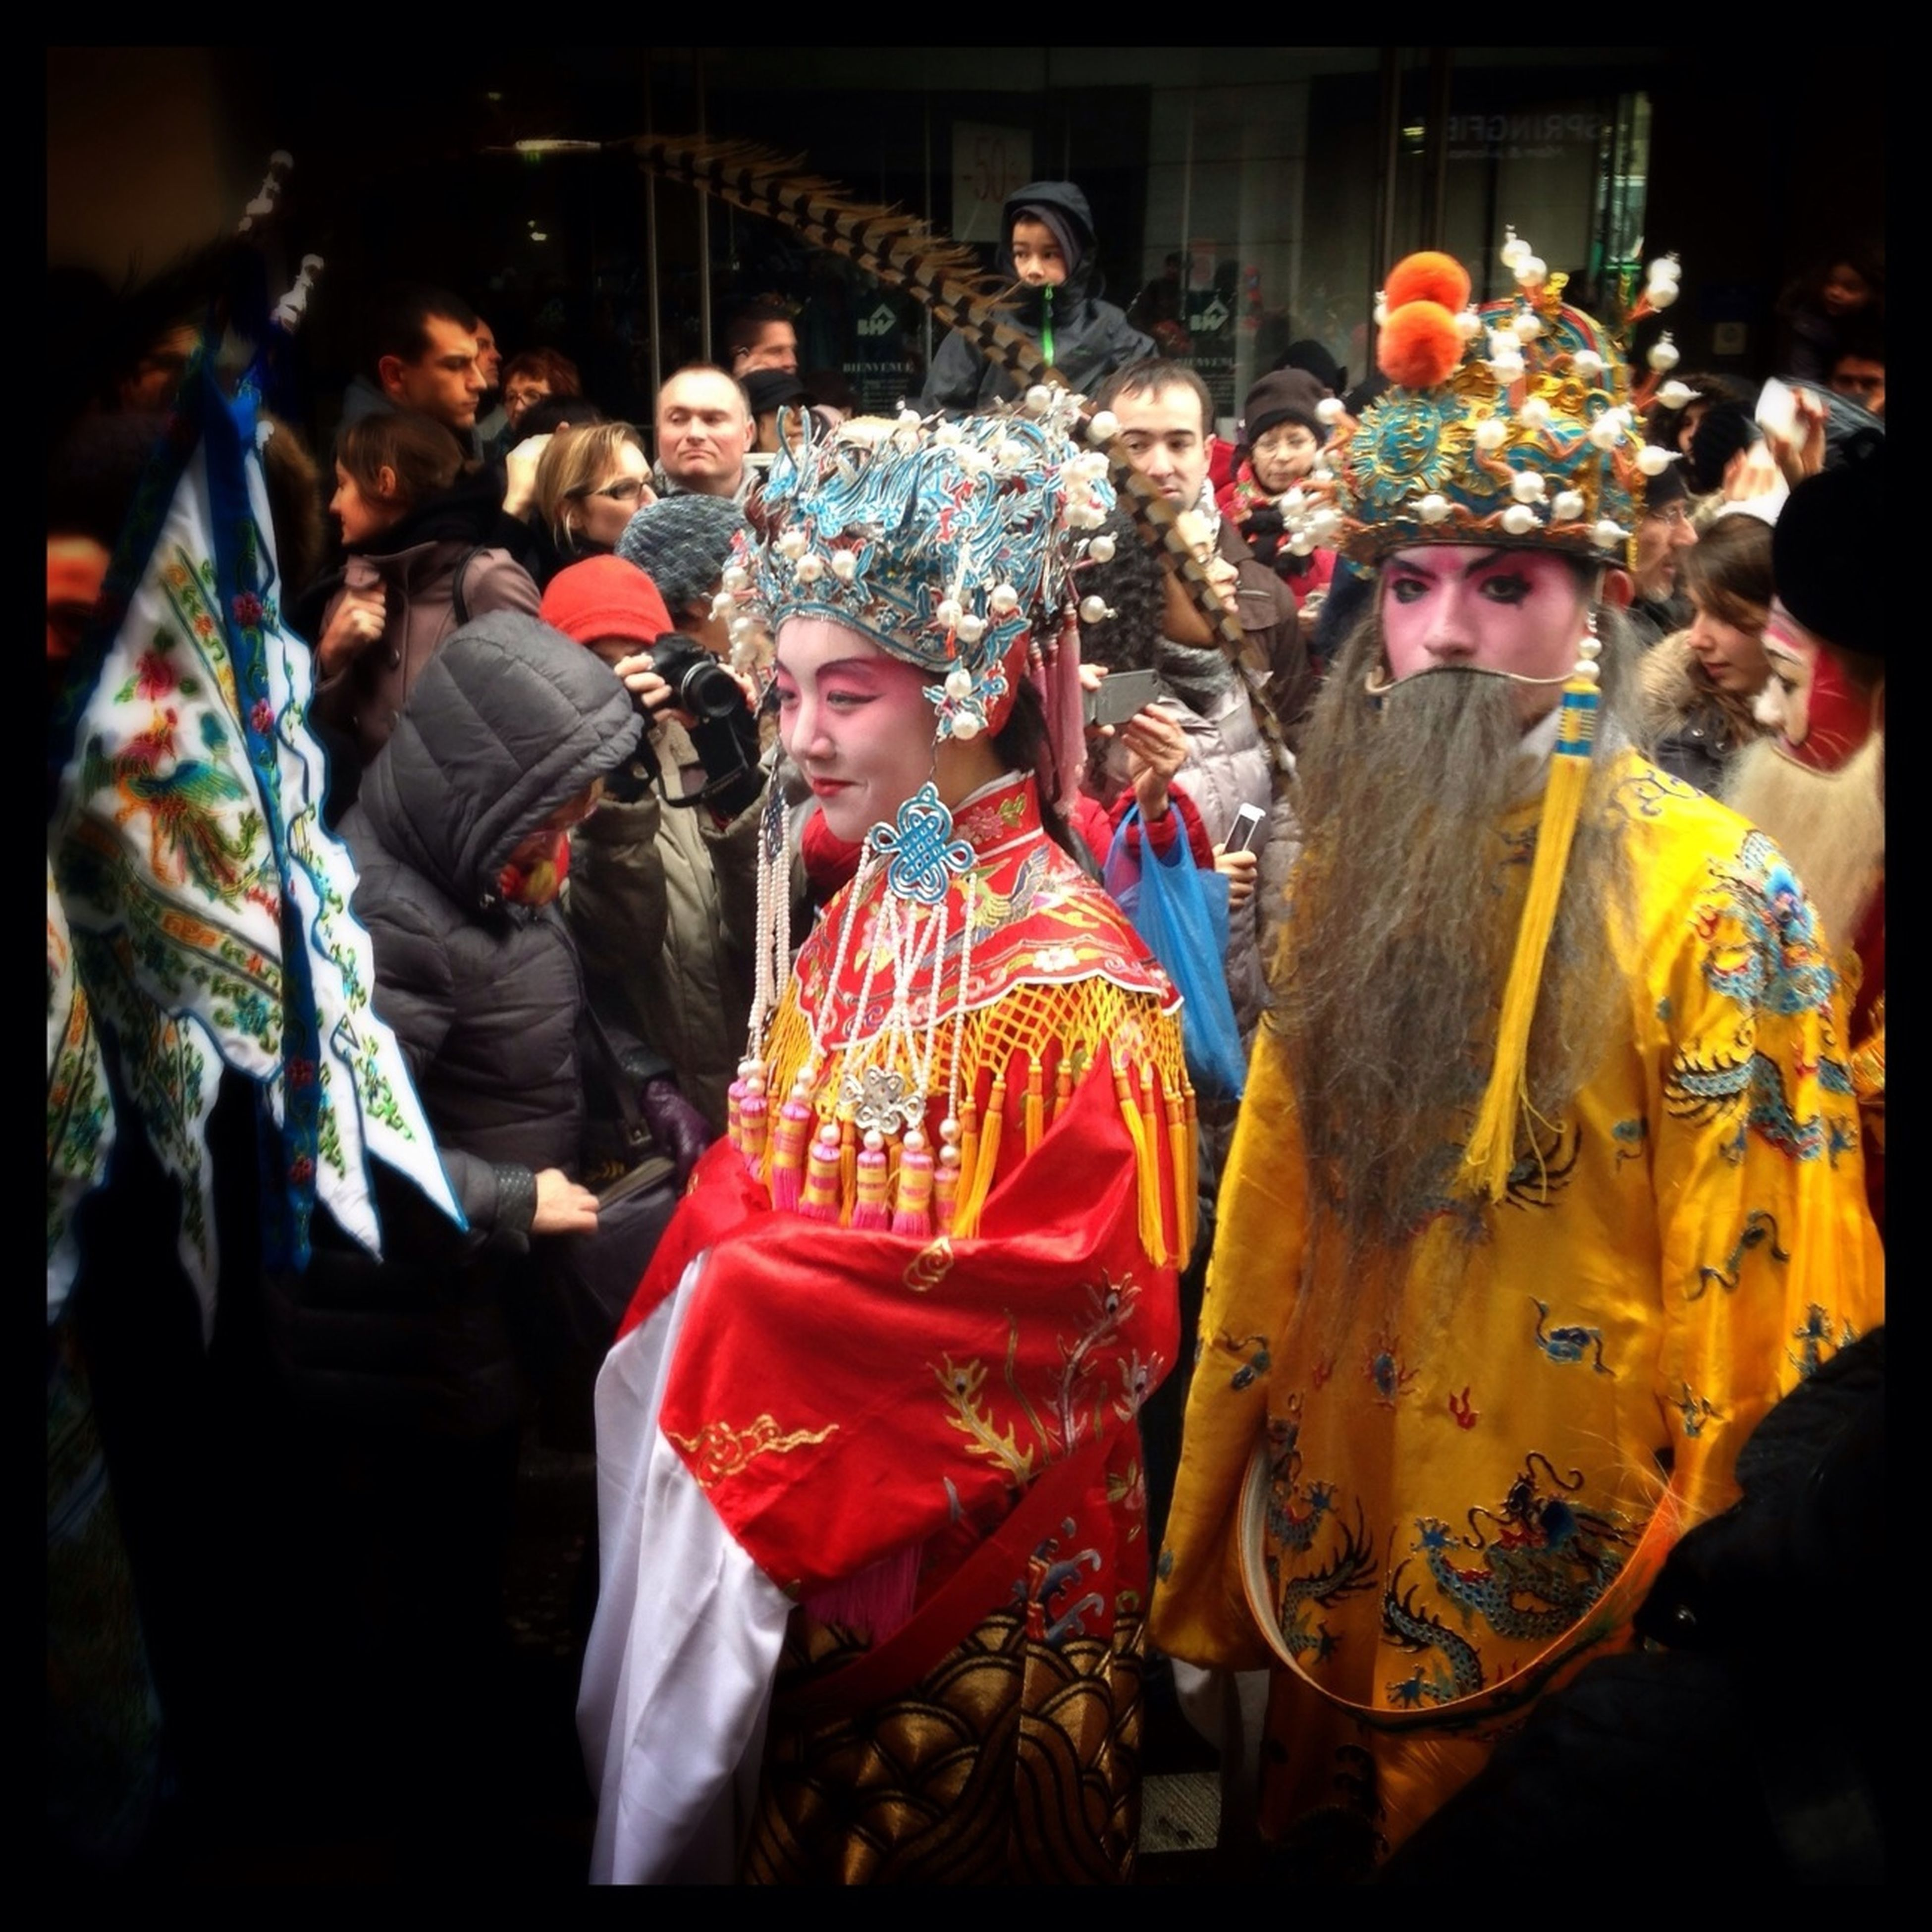 illuminated, indoors, night, celebration, men, cultures, arts culture and entertainment, tradition, person, large group of people, lifestyles, leisure activity, event, decoration, market stall, for sale, religion, retail, traditional clothing